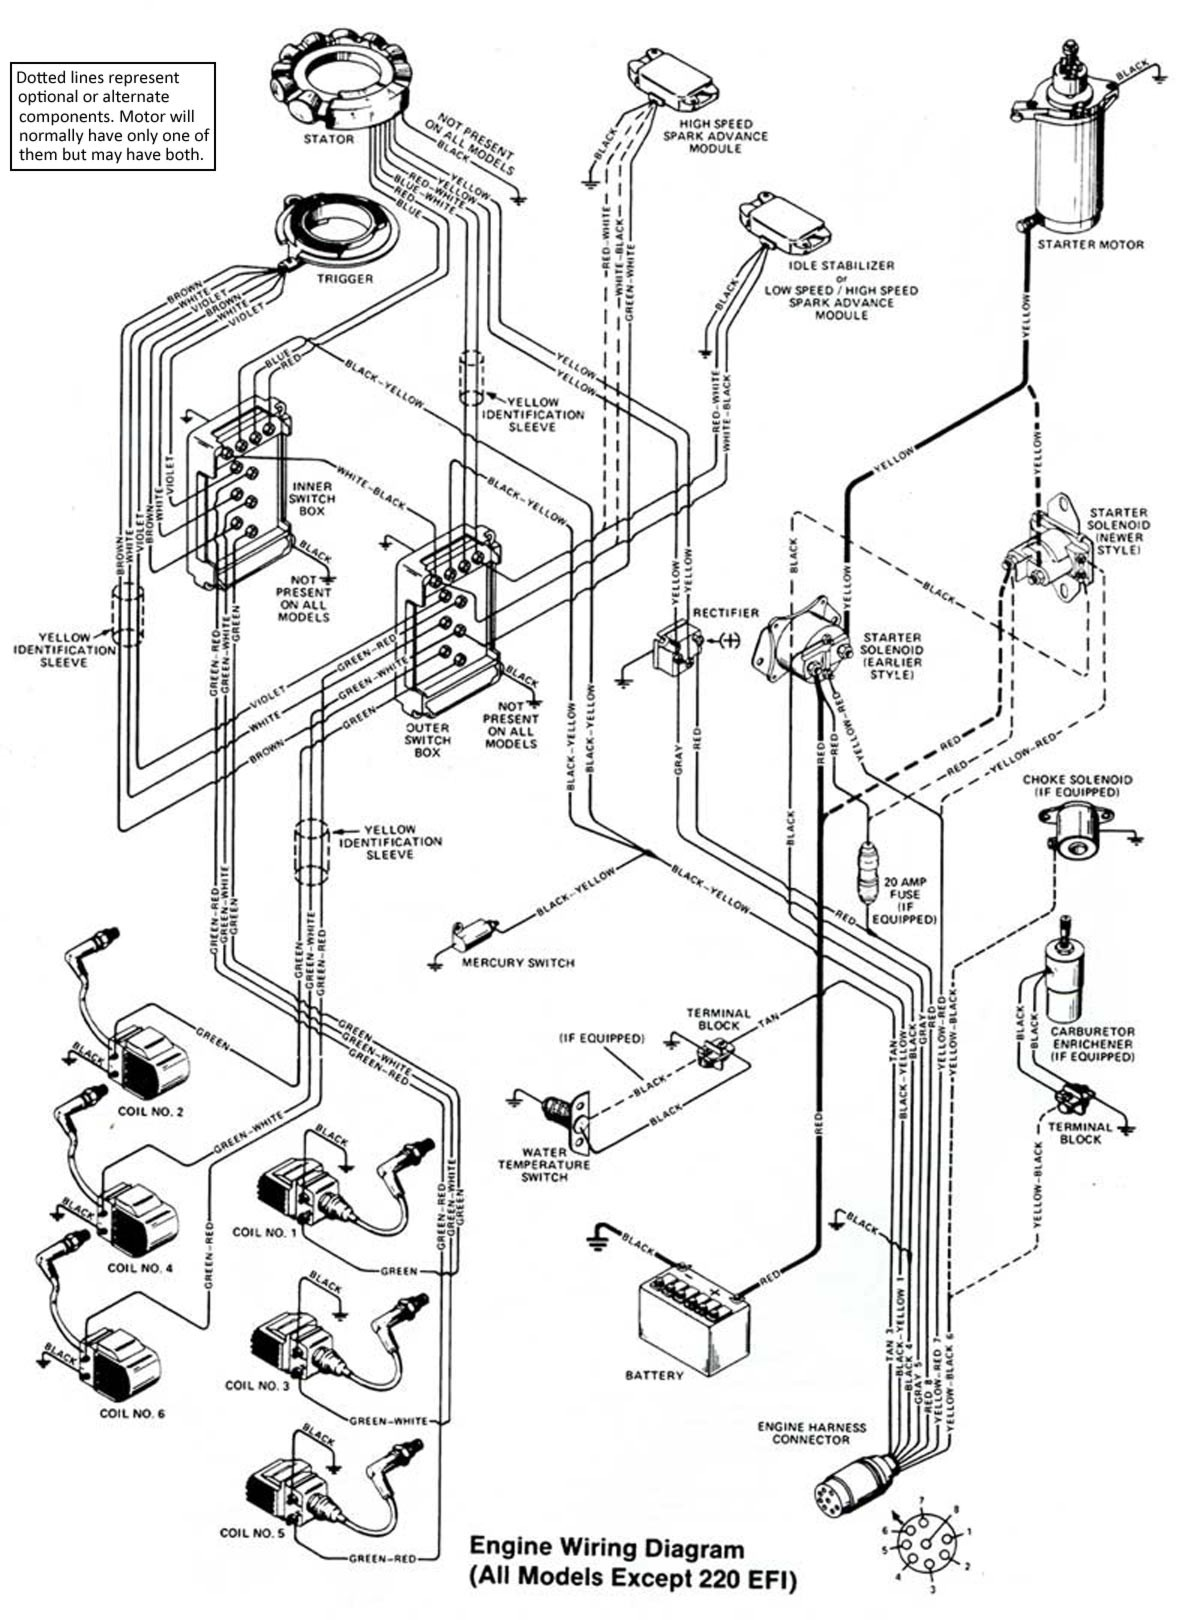 Mercury 115 Hp Wiring F0f4c1 Wiring Diagram 40 Hp Mercury Outboard Of Mercury 115 Hp Wiring